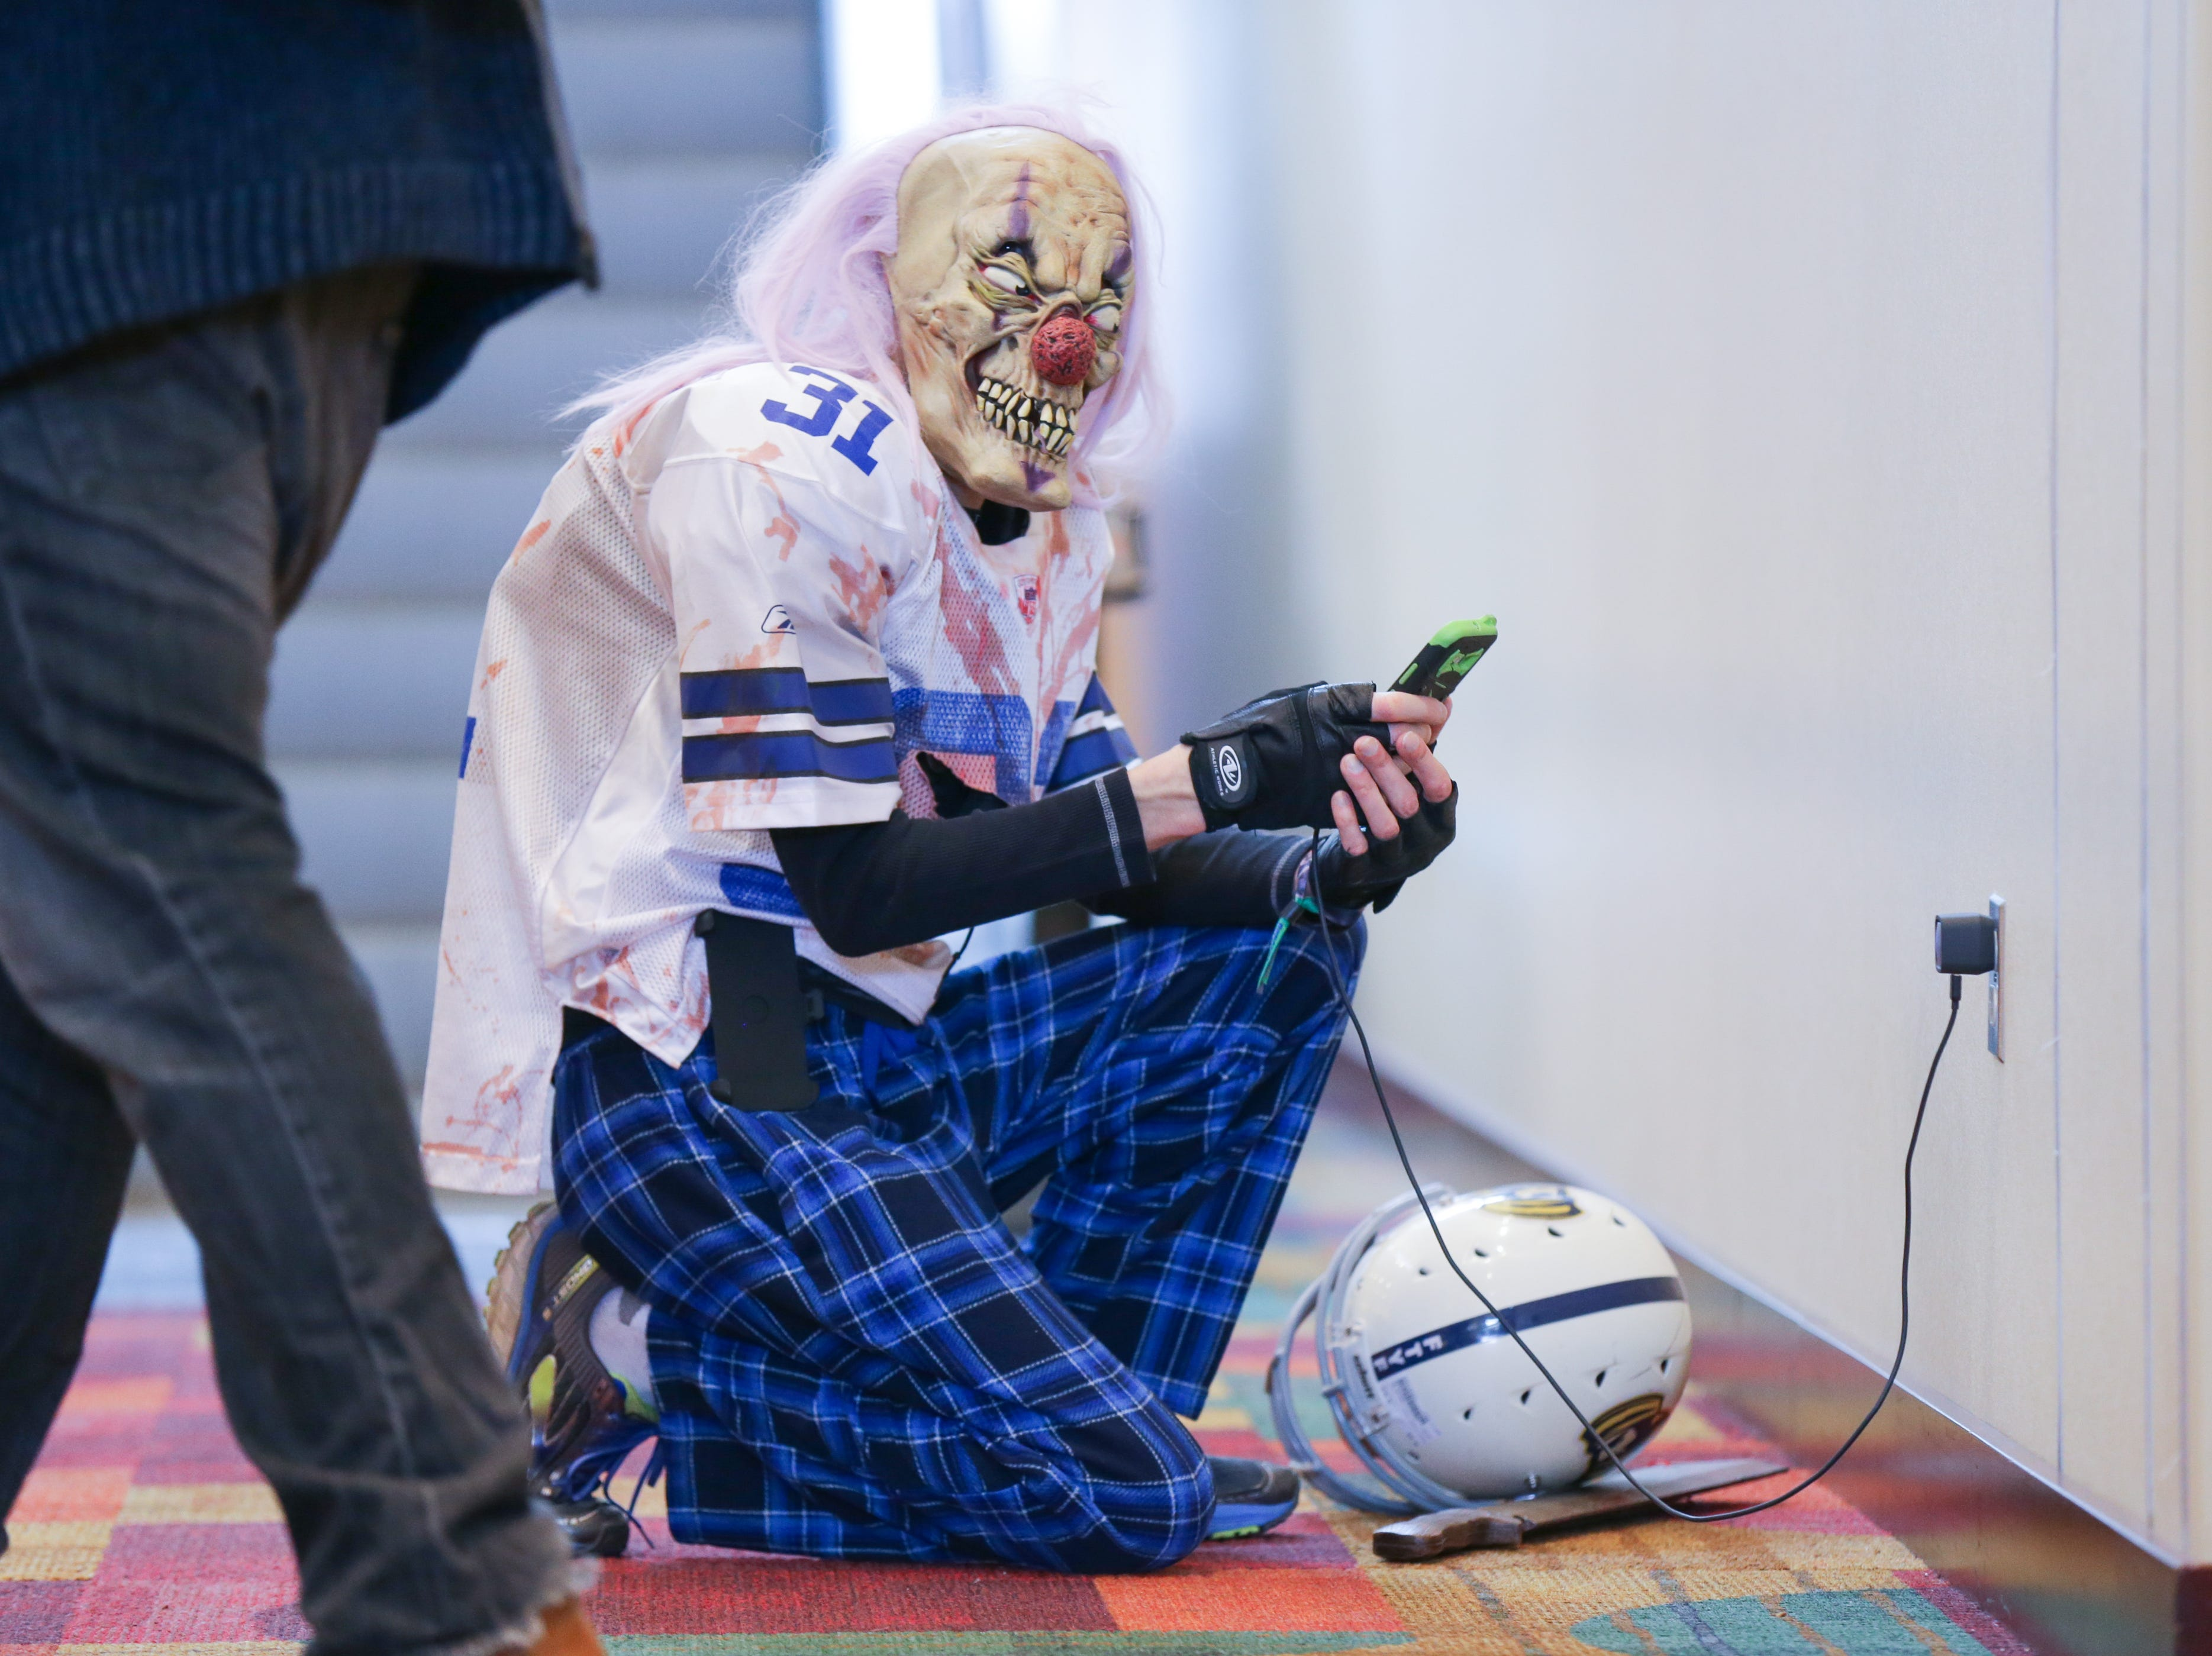 A cosplayer charges their phone at the Indiana Comic Con held at the Indianapolis Convention Center on Sunday, April 1, 2018.